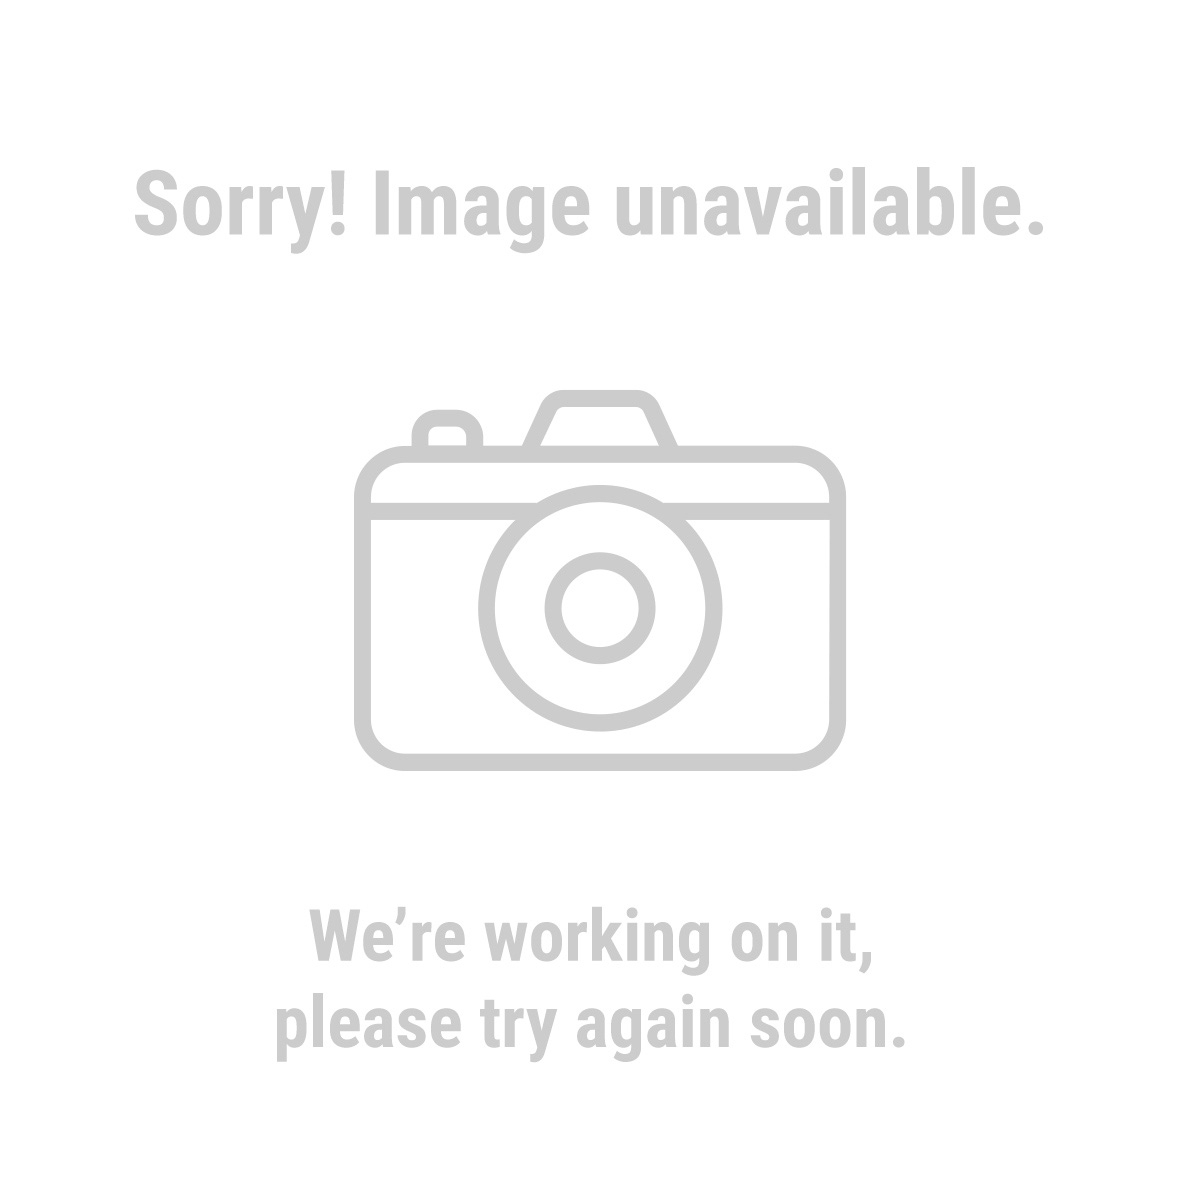 "Lifetime Carbide 94642 7-1/4"" C5 Carbide Tipped Circular Saw Blade"